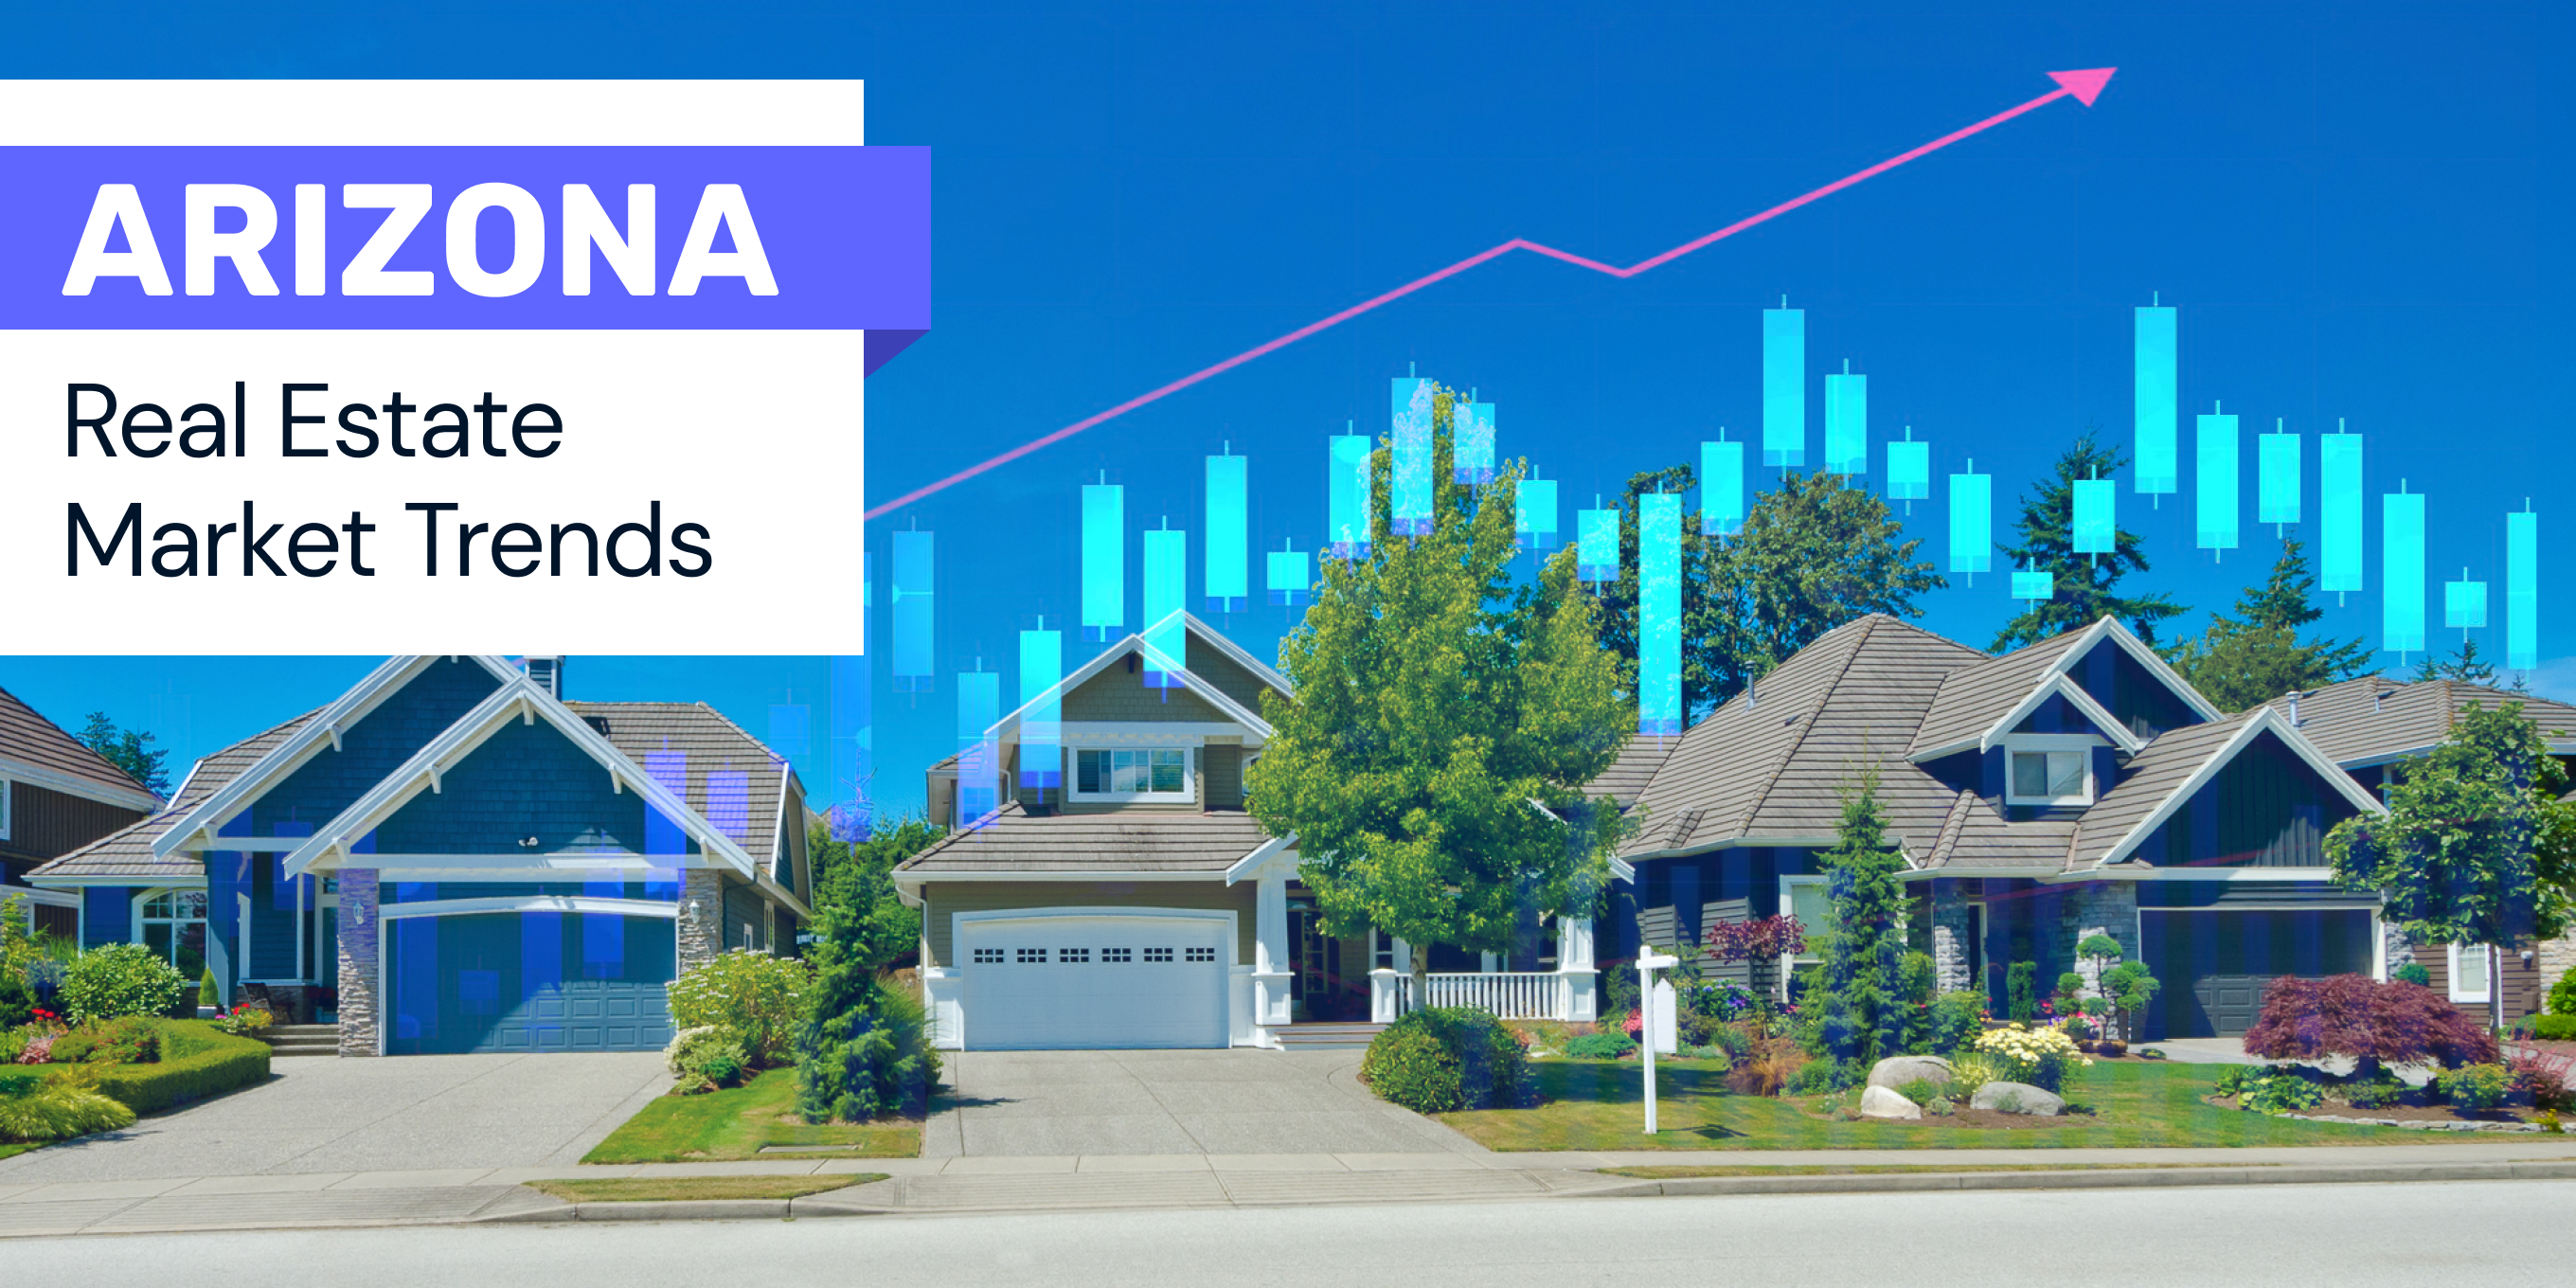 STATE real estate trends